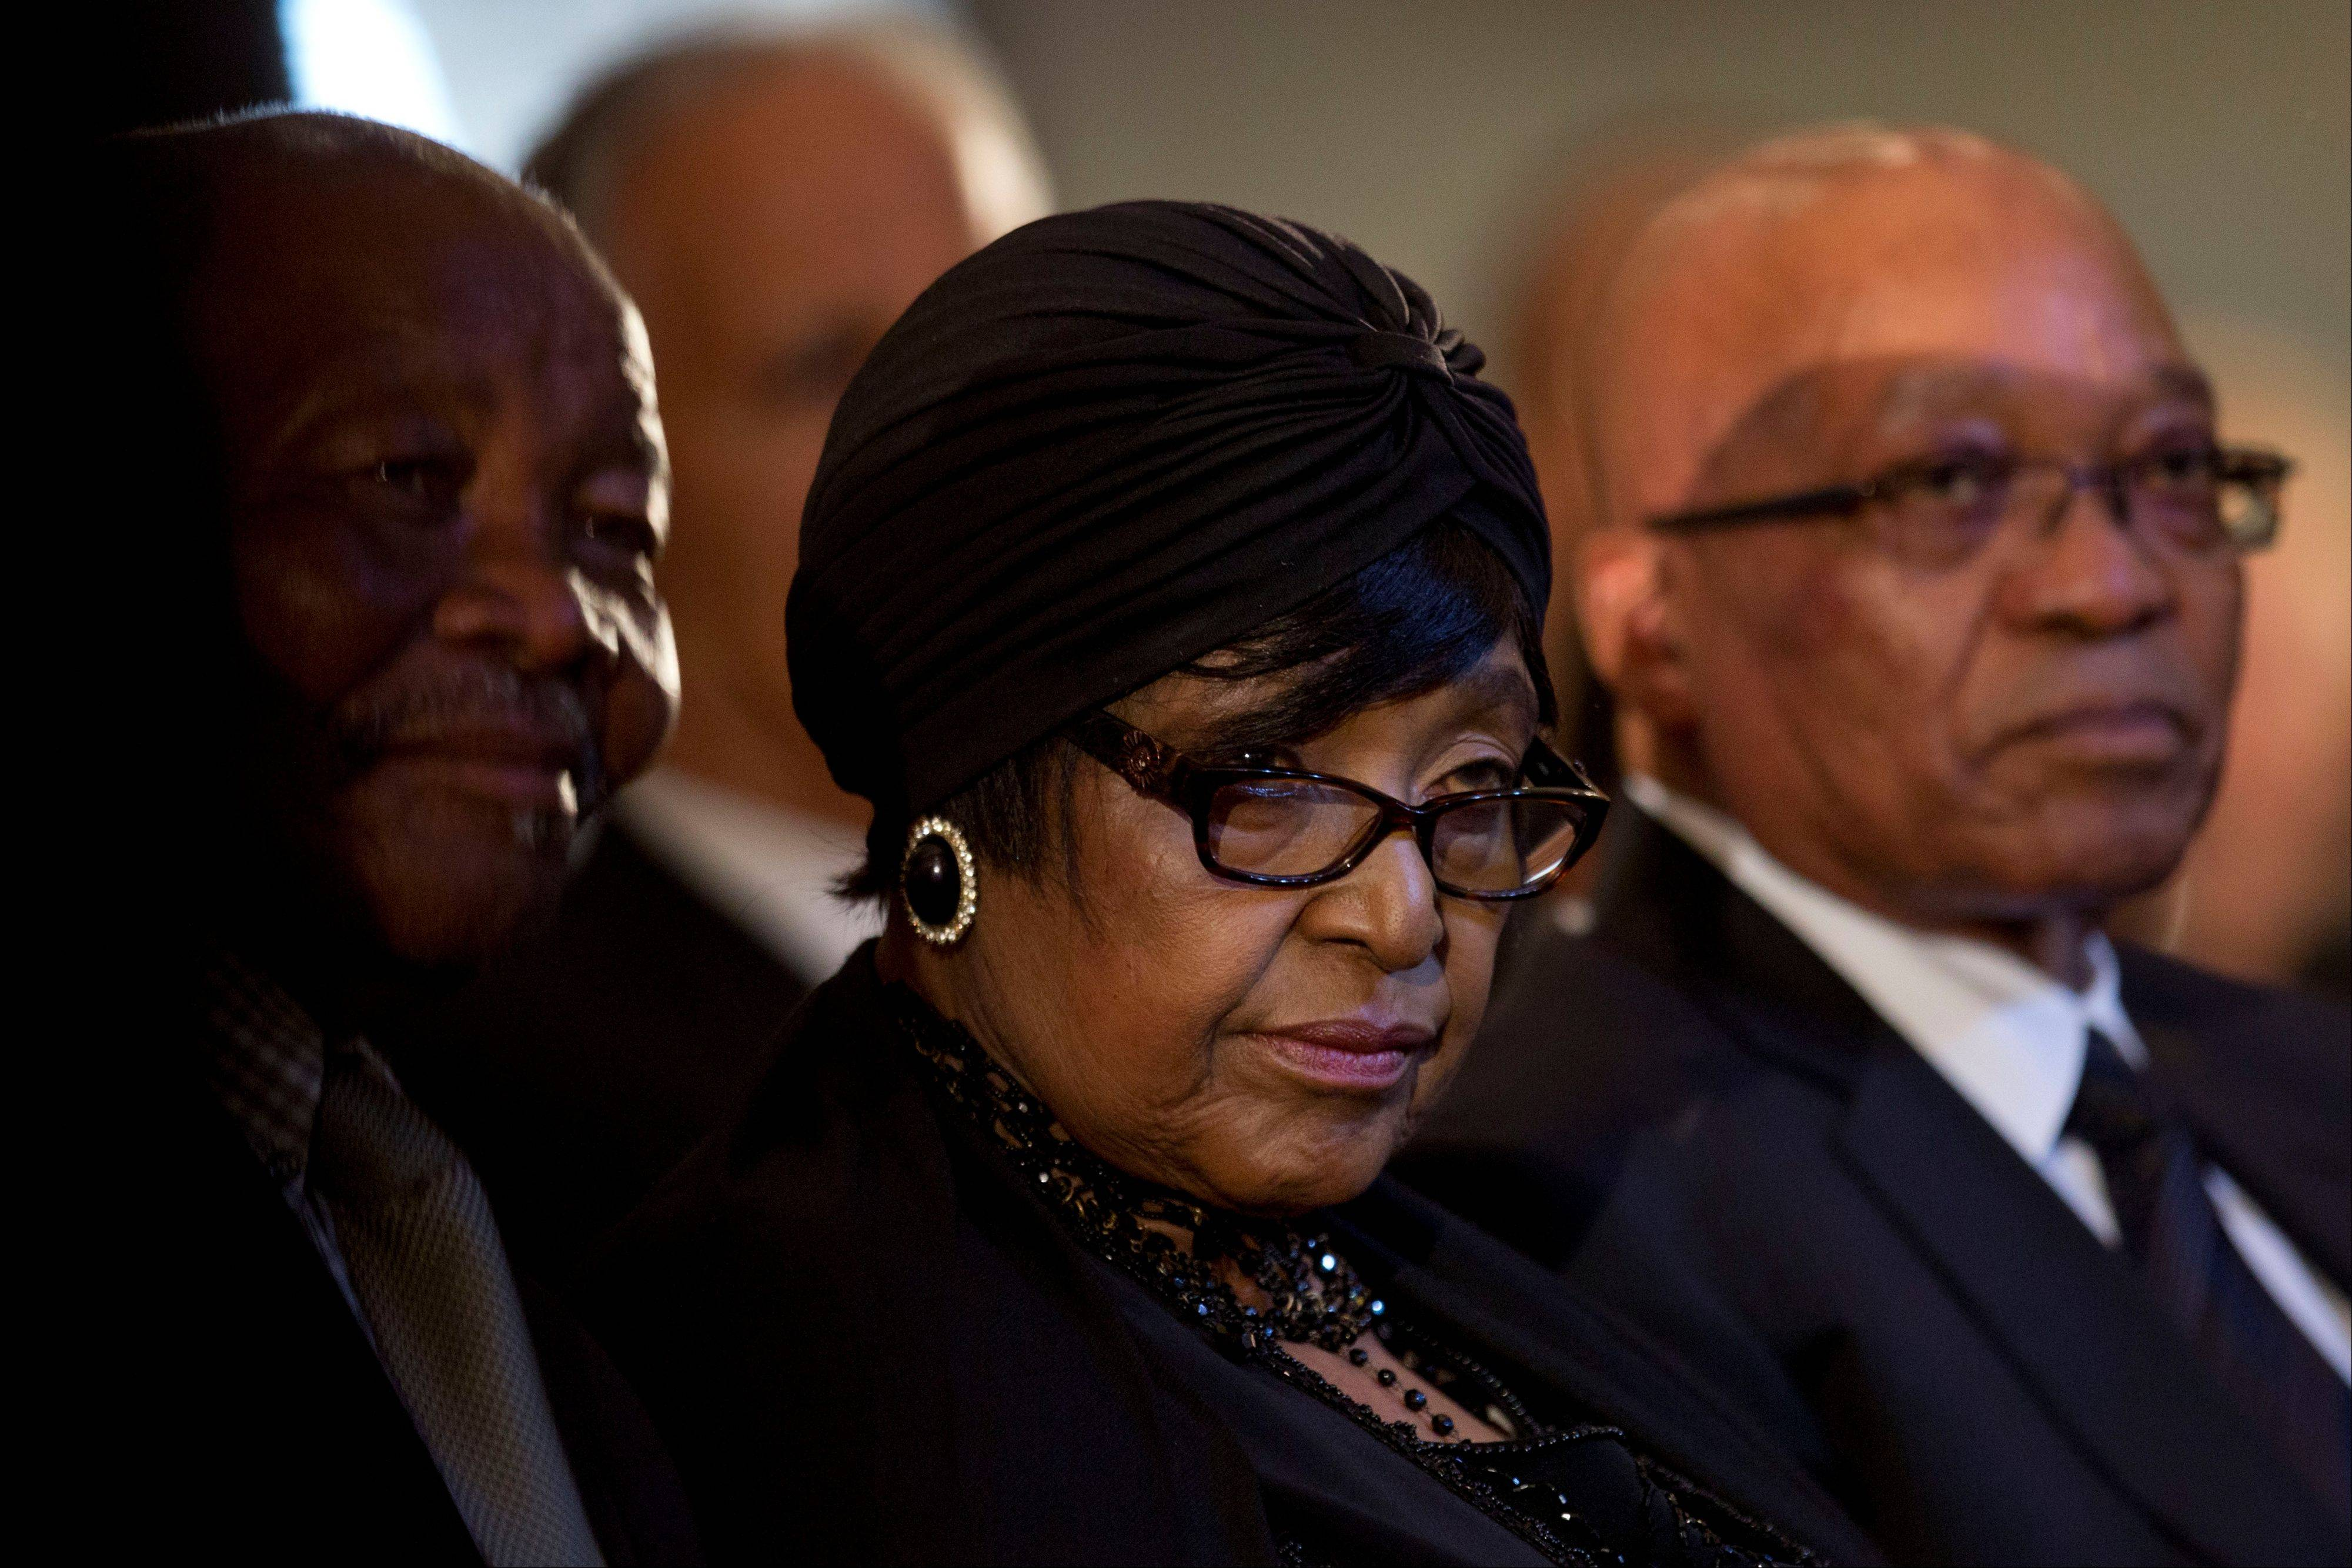 Winnie Madikizela-Mandela, Nelson Mandela�s former wife, left, and South African President Jacob Zuma, right, attend a memorial service for Mandela at the Bryanston Methodist Church in Bryanston suburb of Johannesburg, South Africa, Sunday. South Africa is readying itself for the arrival of a flood of world leaders for the memorial service and funeral for Nelson Mandela.